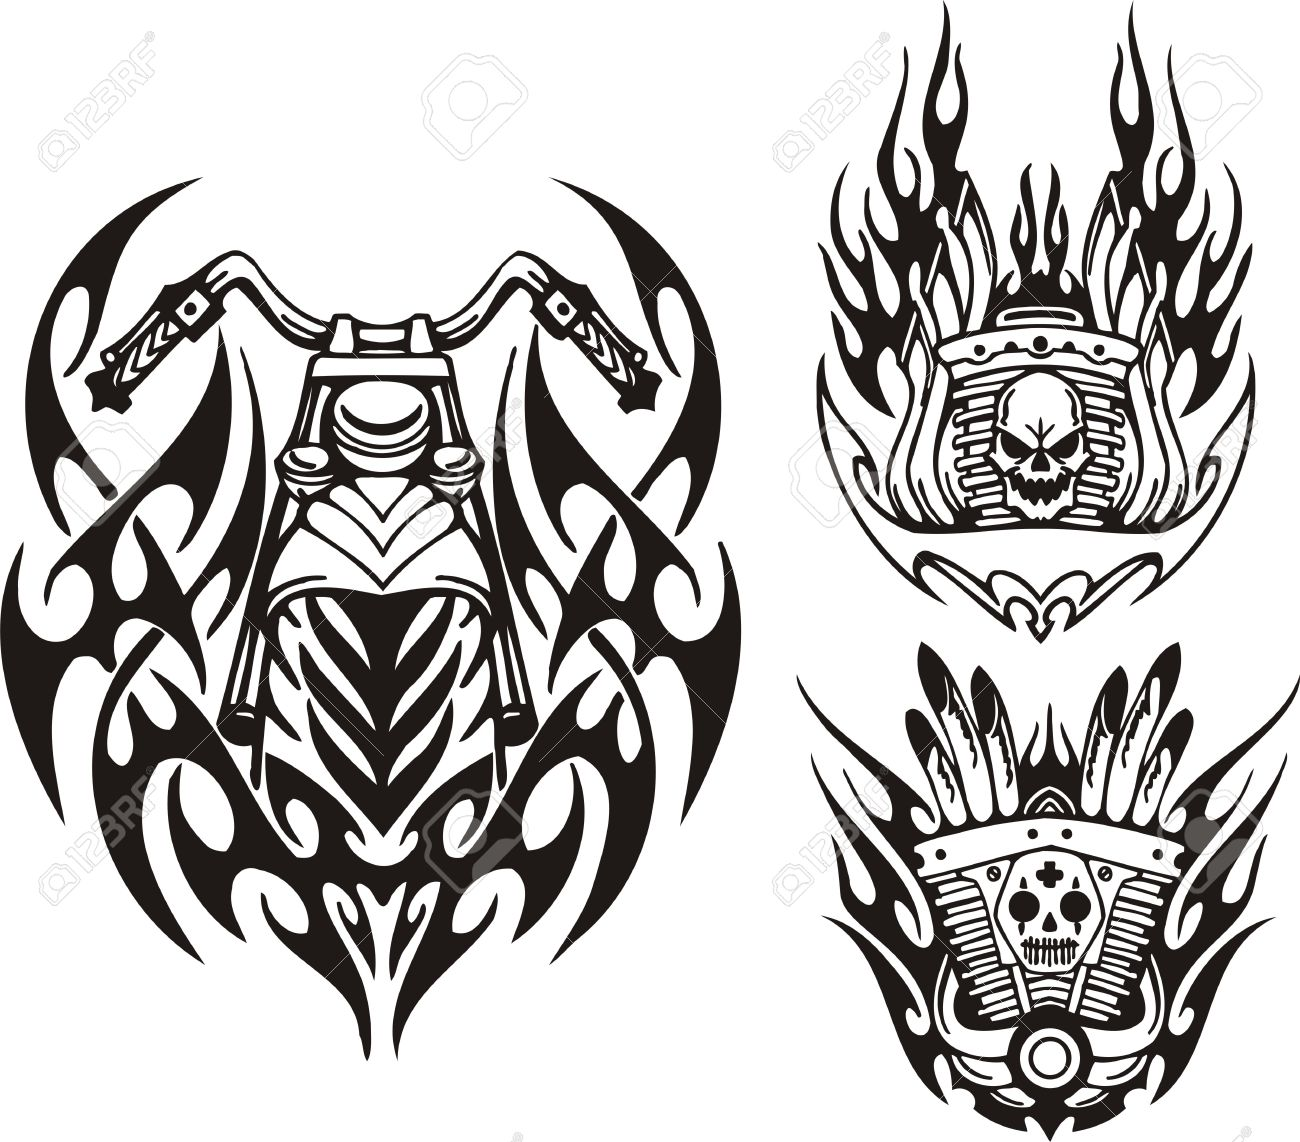 Skull, Demon And Motorcycle Wheel. Tribal Bikes. Vector.